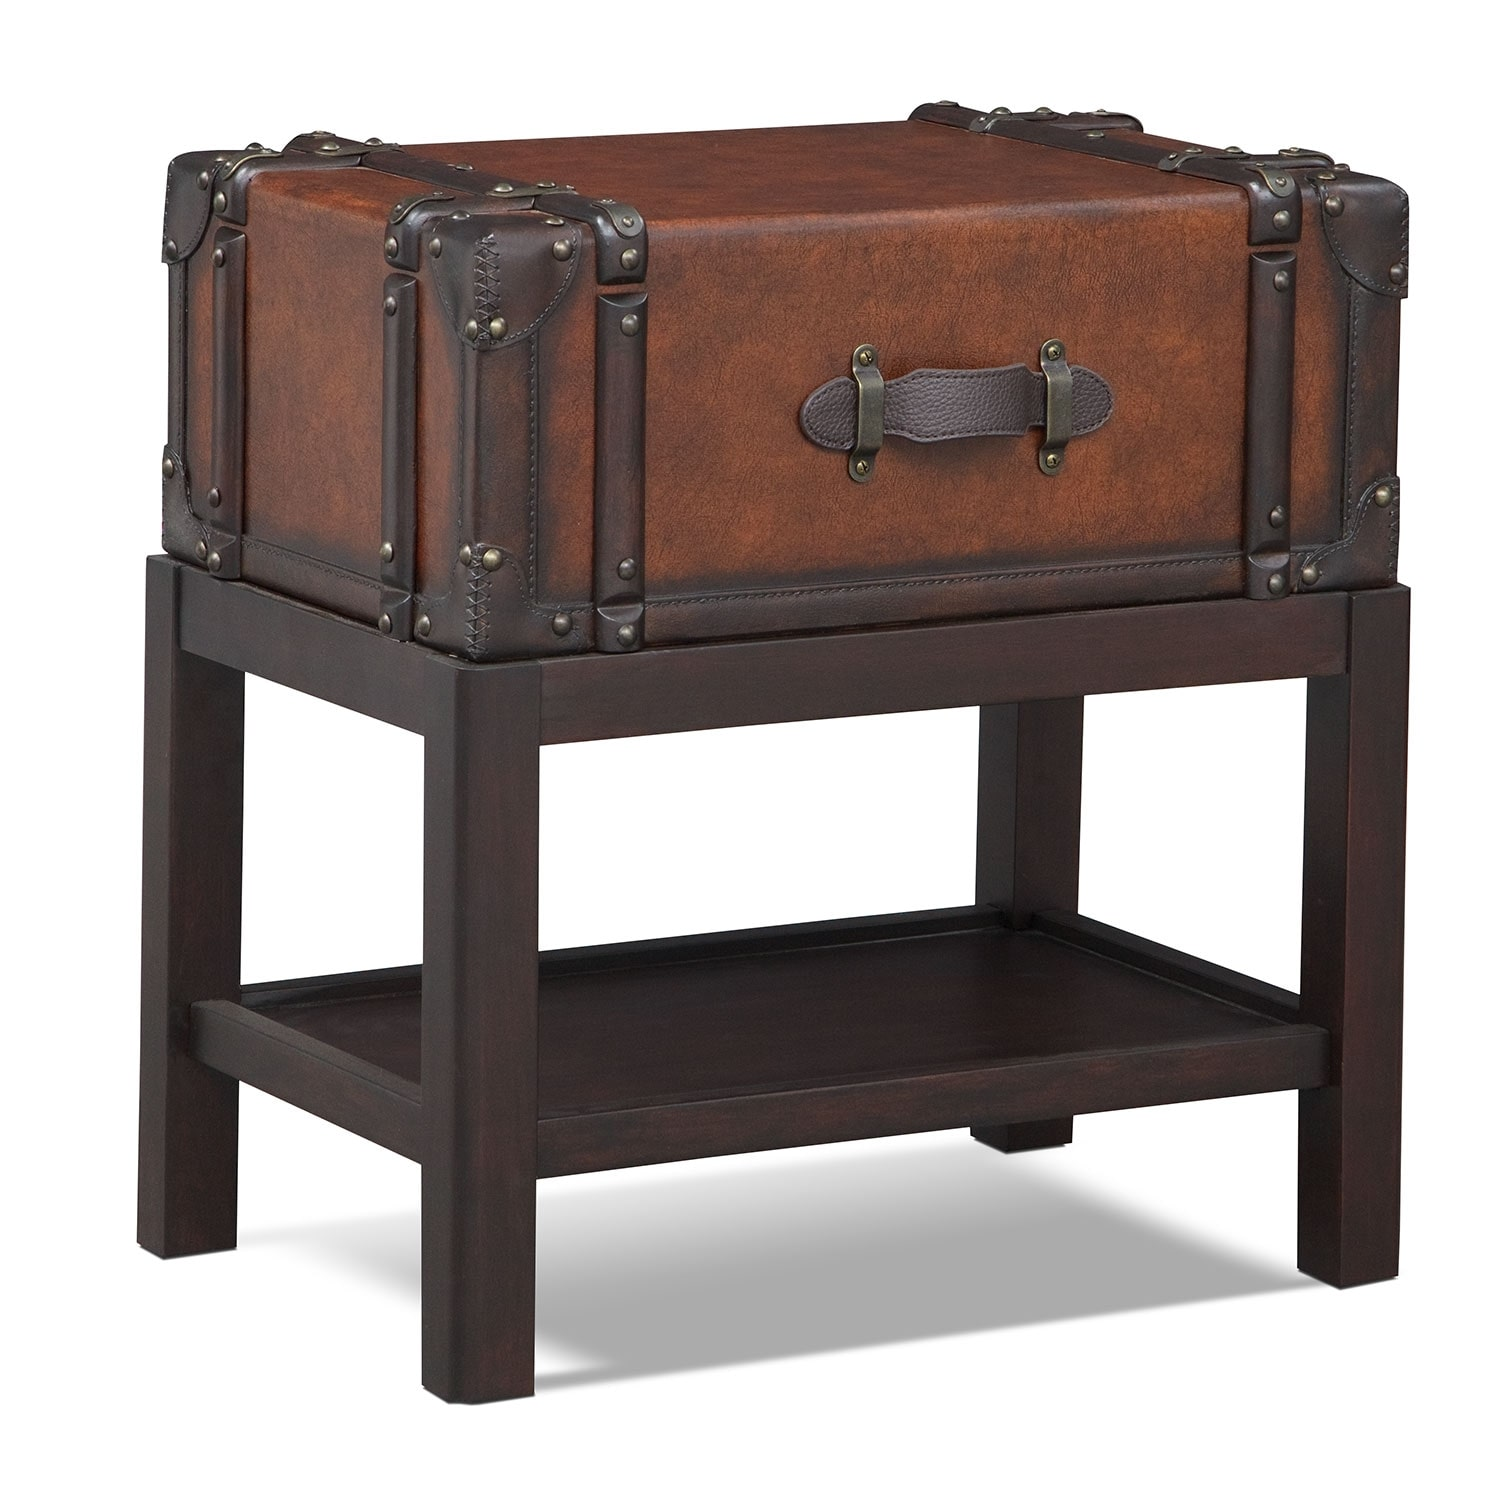 Expedition Chairside Table - Brown